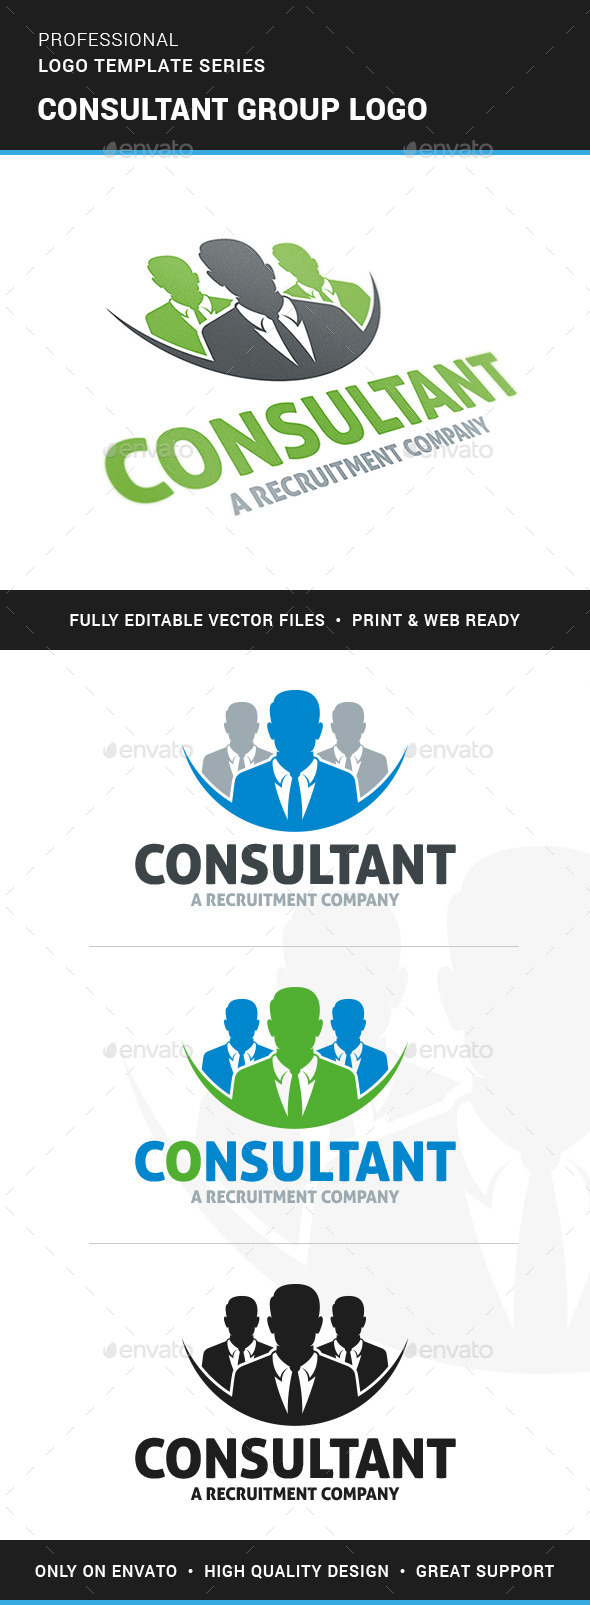 Consultant Group Logo Template